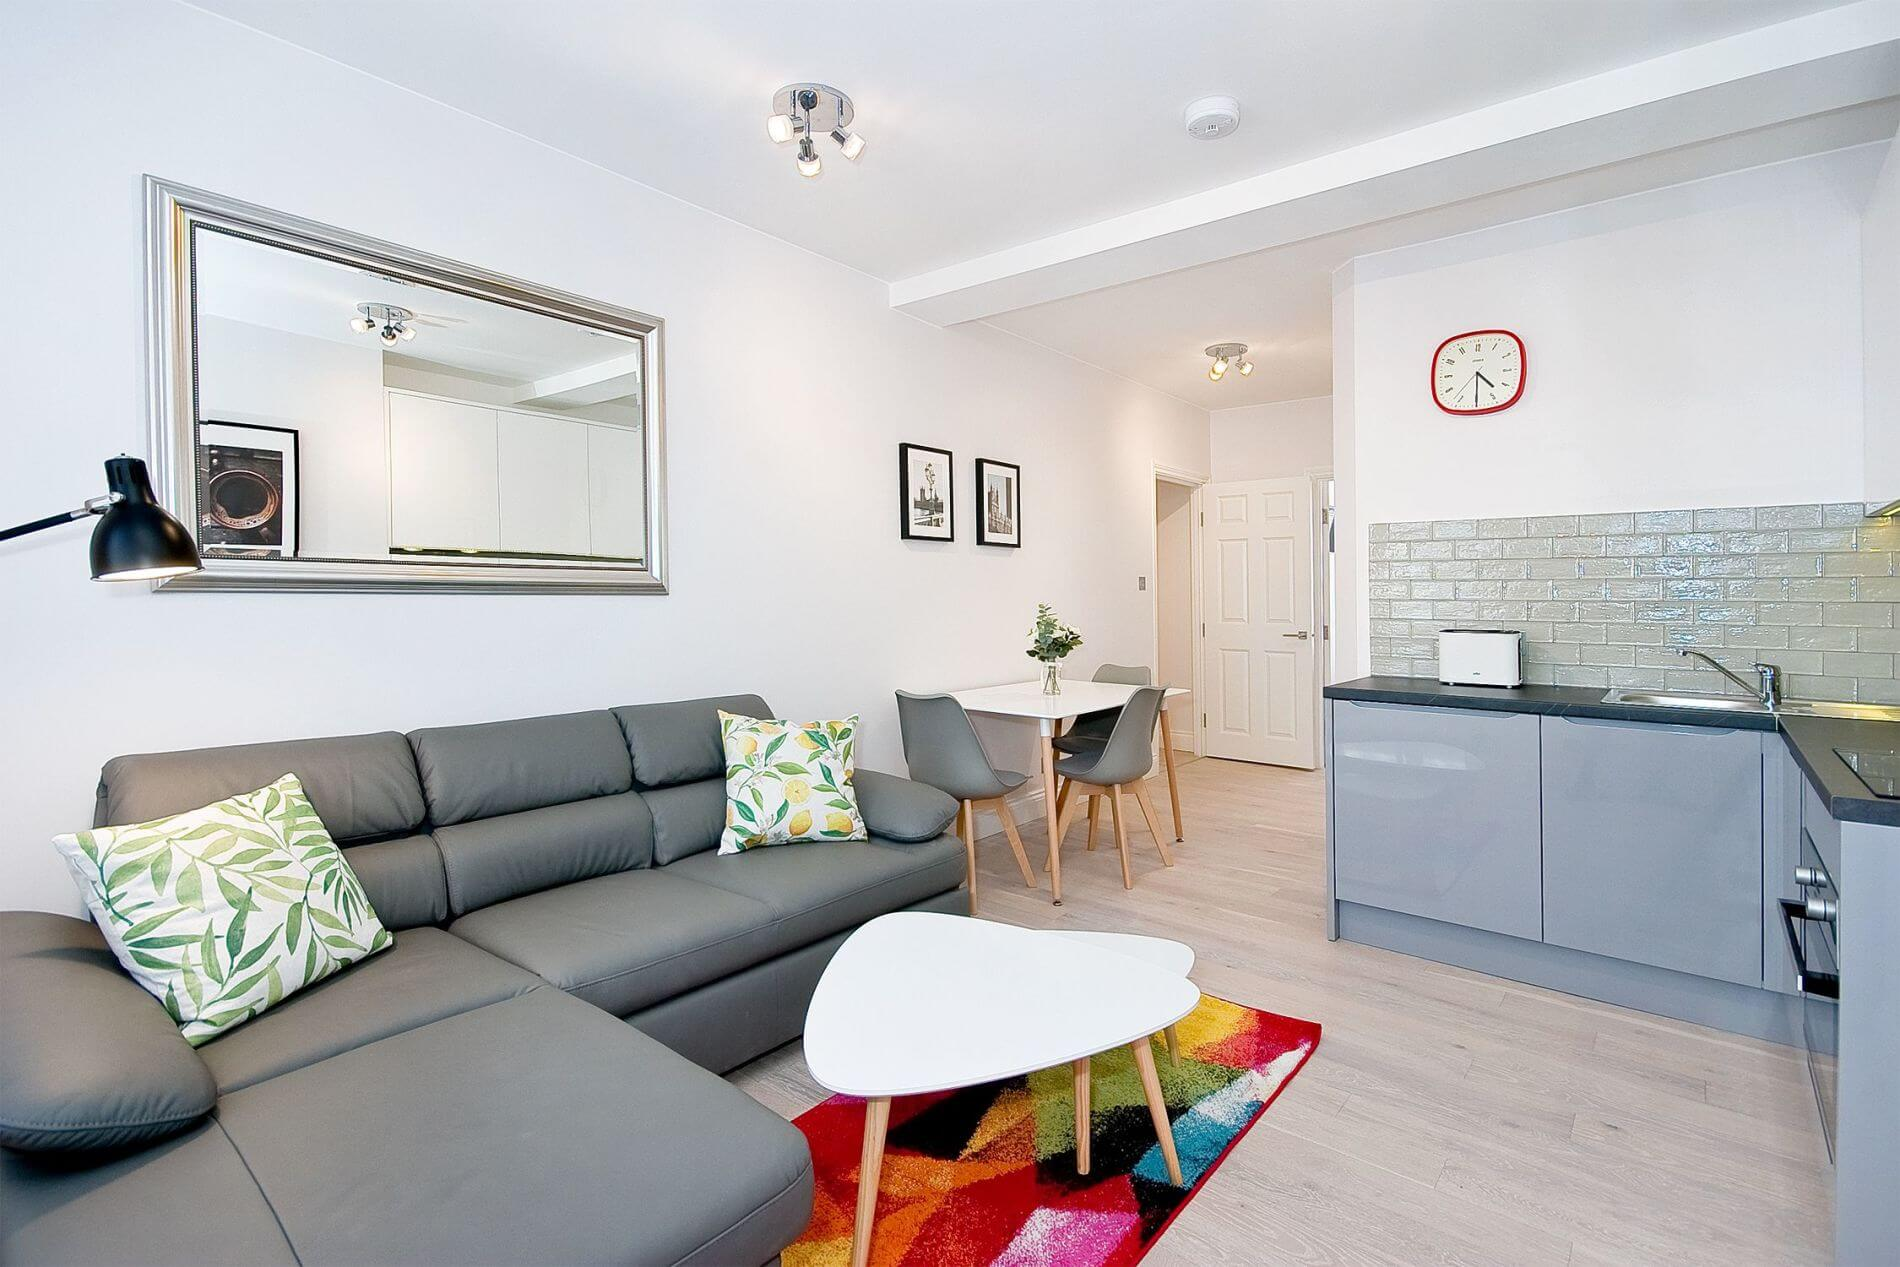 Comfy 1 bed serviced apartment in central location in London for long stays